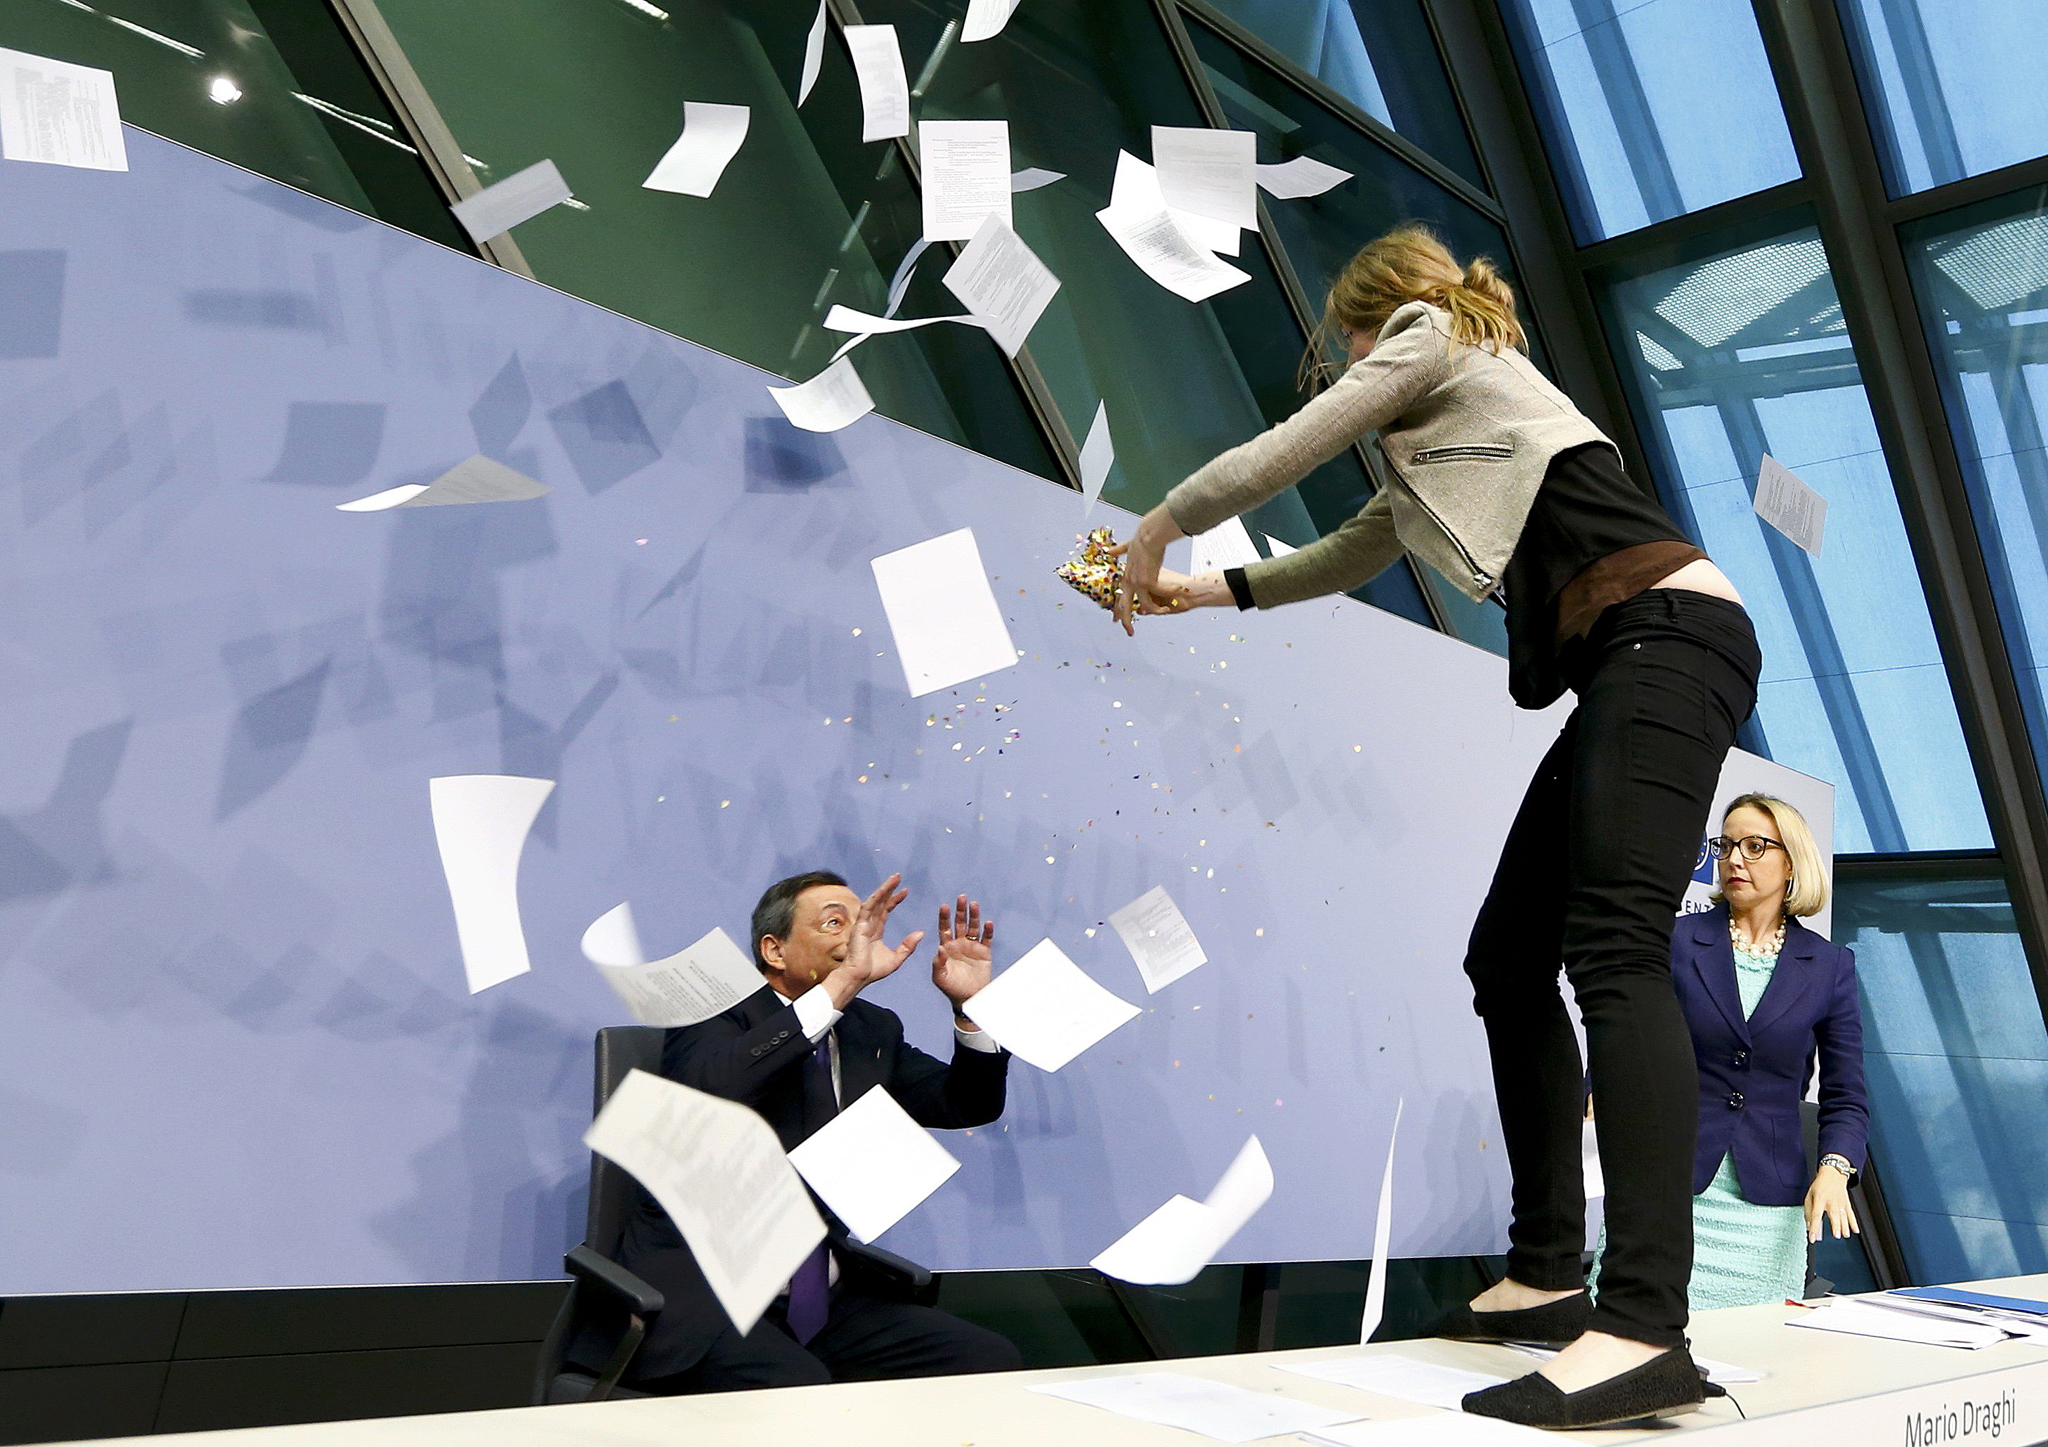 A protester jumps on the table in front of the European Central Bank President Draghi during a news conference in Frankfurt...A protester jumps on the table in front of the European Central Bank President Mario Draghi during a news conference in Frankfurt, April 15, 2015. The news conference was disrupted on Wednesday when a woman in a black T-shirt jumped on the podium.   REUTERS/Ralph Orlowski  TPX IMAGES OF THE DAY